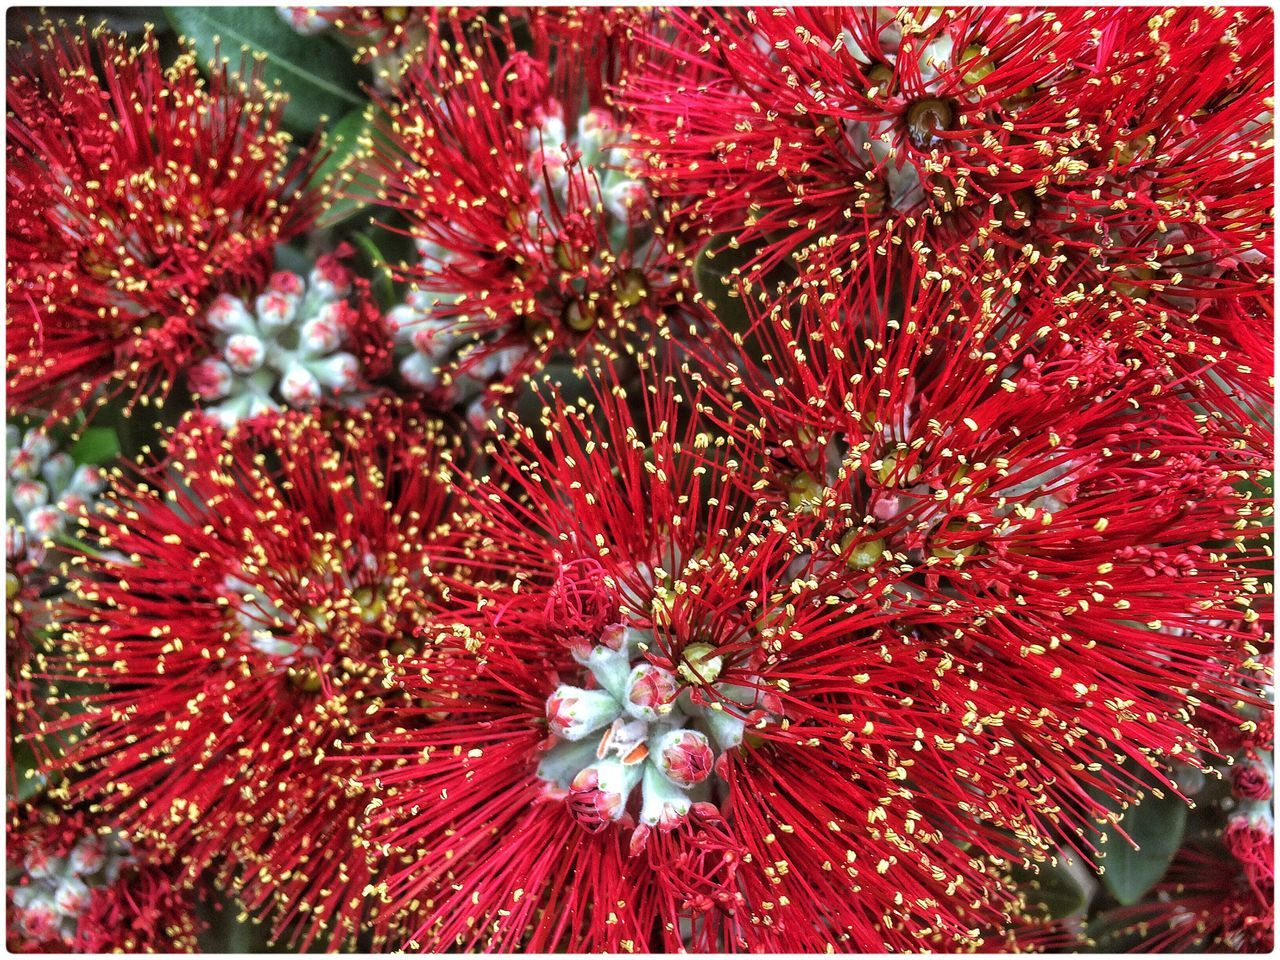 red, no people, full frame, growth, flower, flower head, day, nature, freshness, close-up, fragility, outdoors, undersea